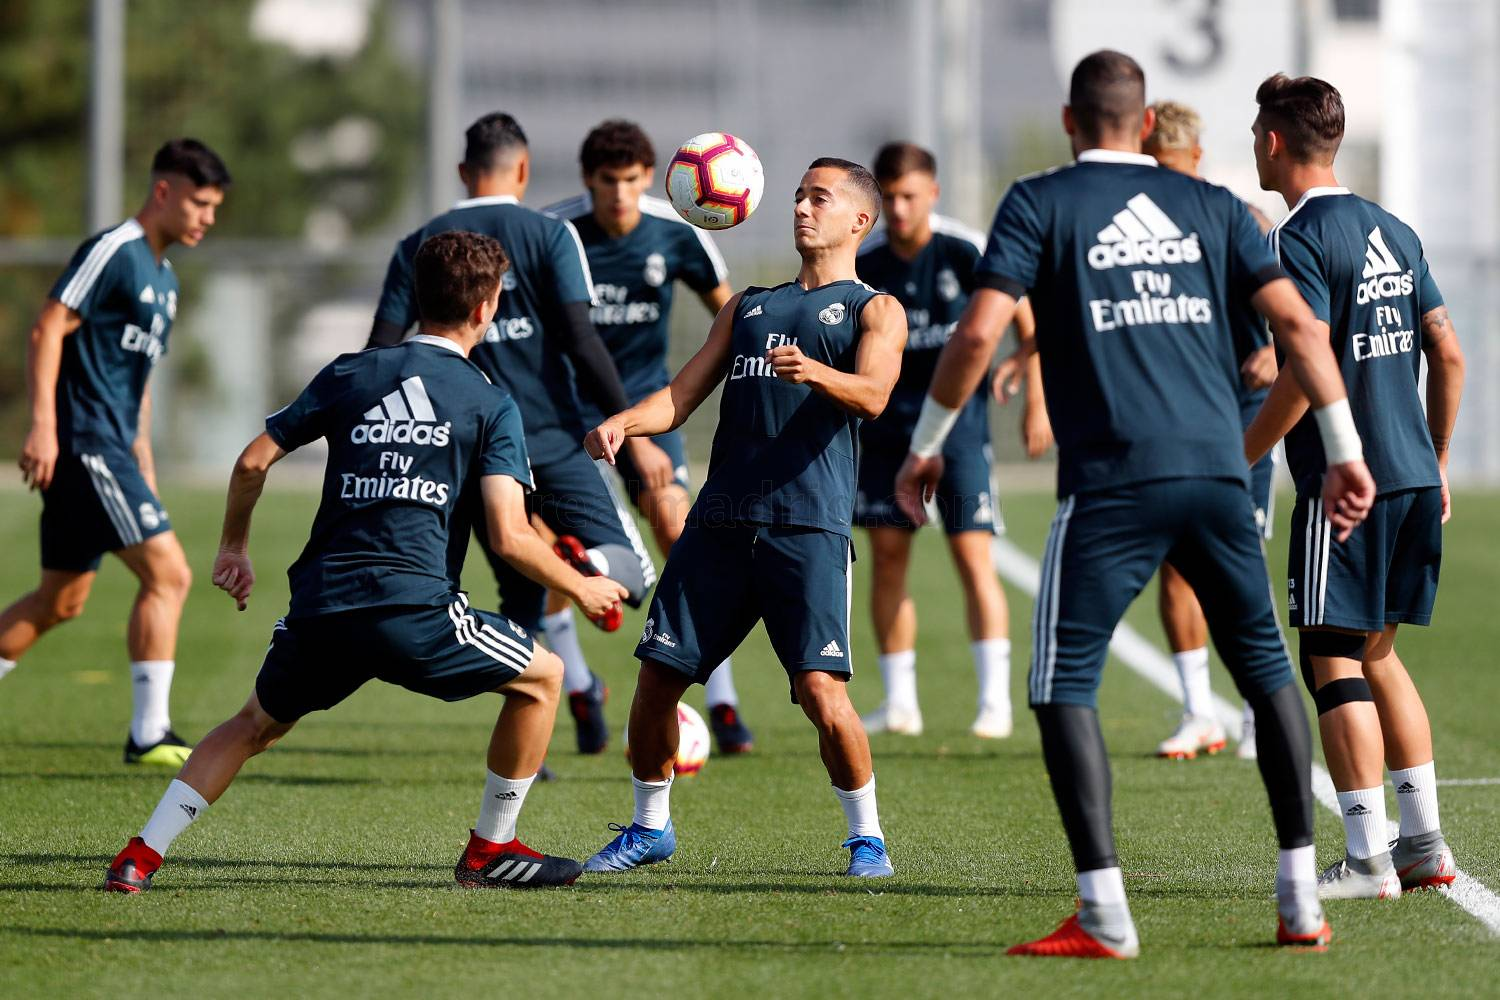 Real Madrid - Entrenamiento del Real Madrid - 04-09-2018